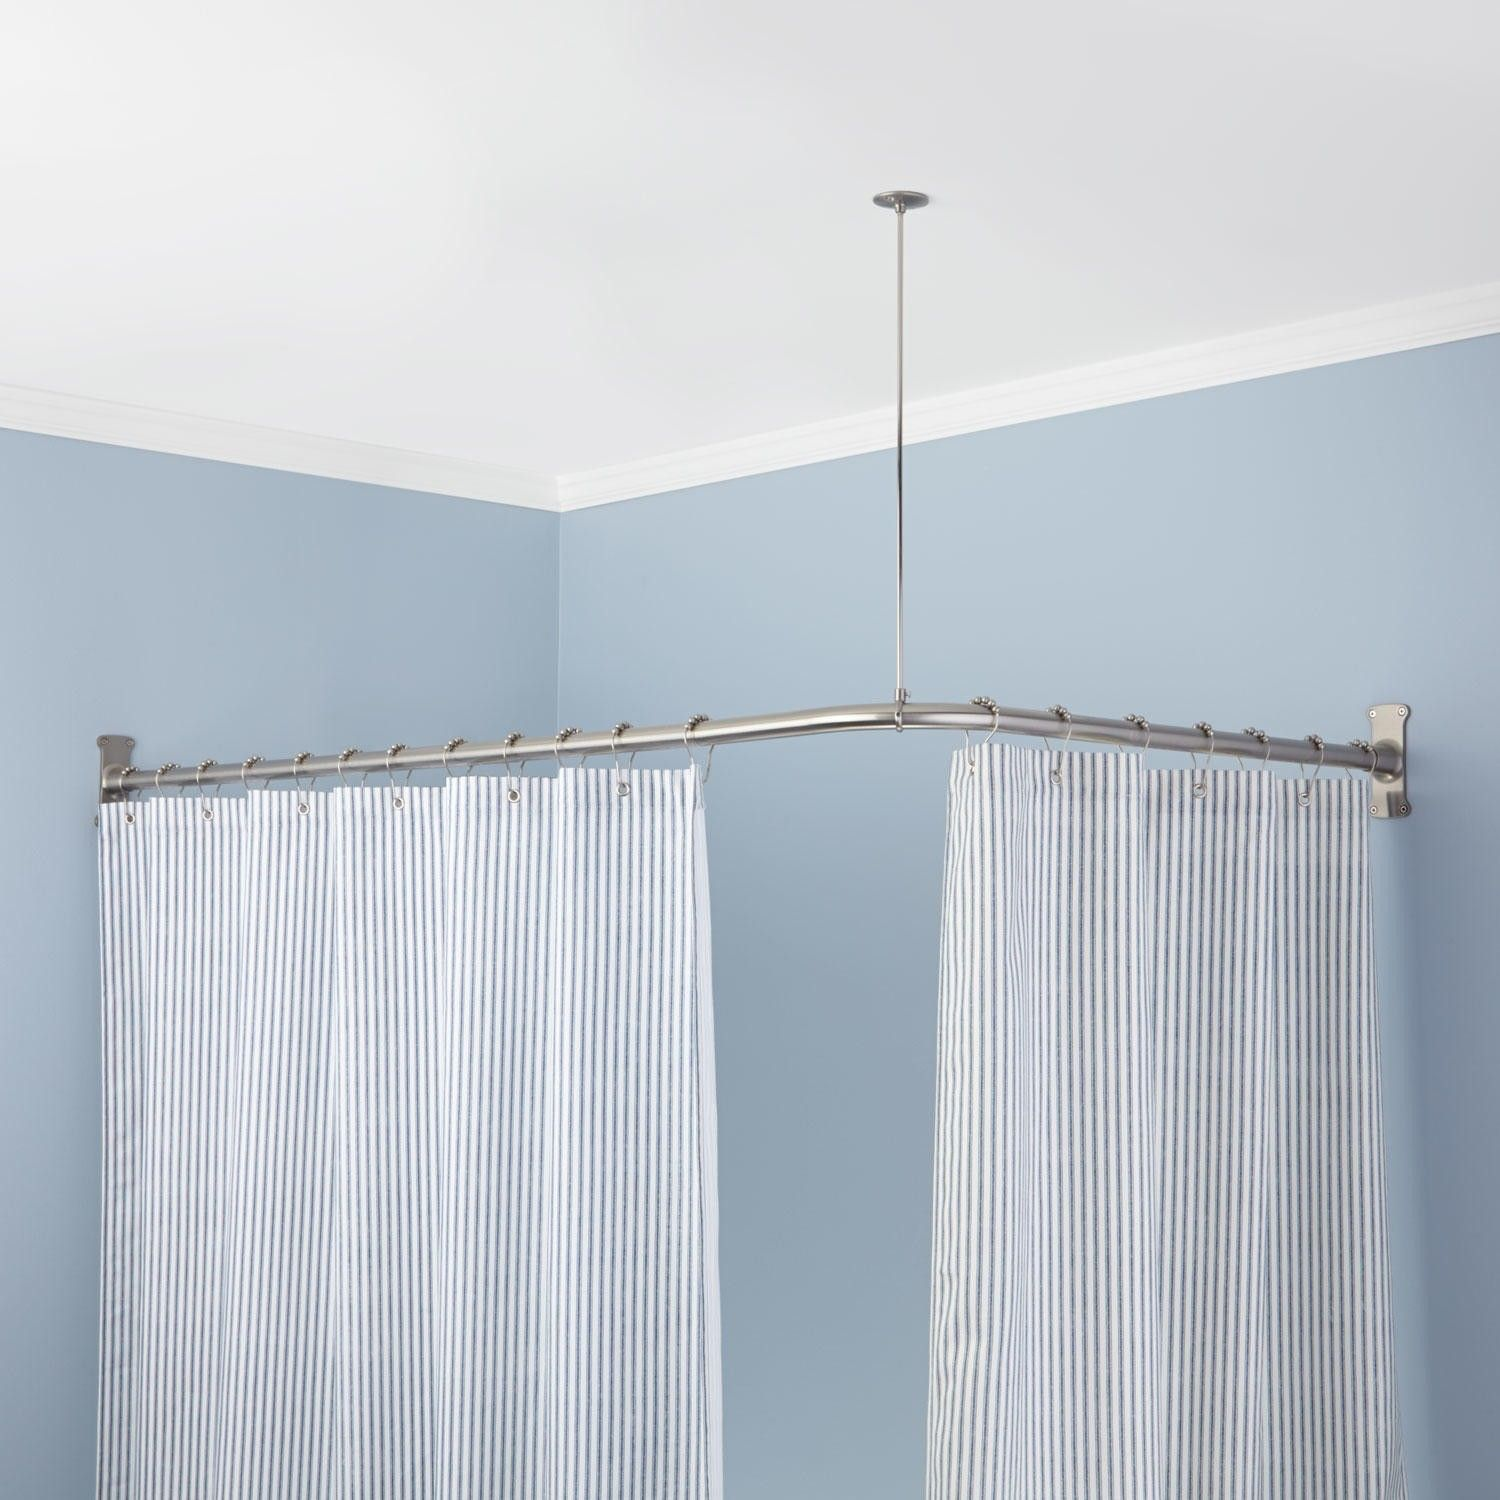 Corner Shower Curtain Rod Shower Curtain Rods Bathroom Round